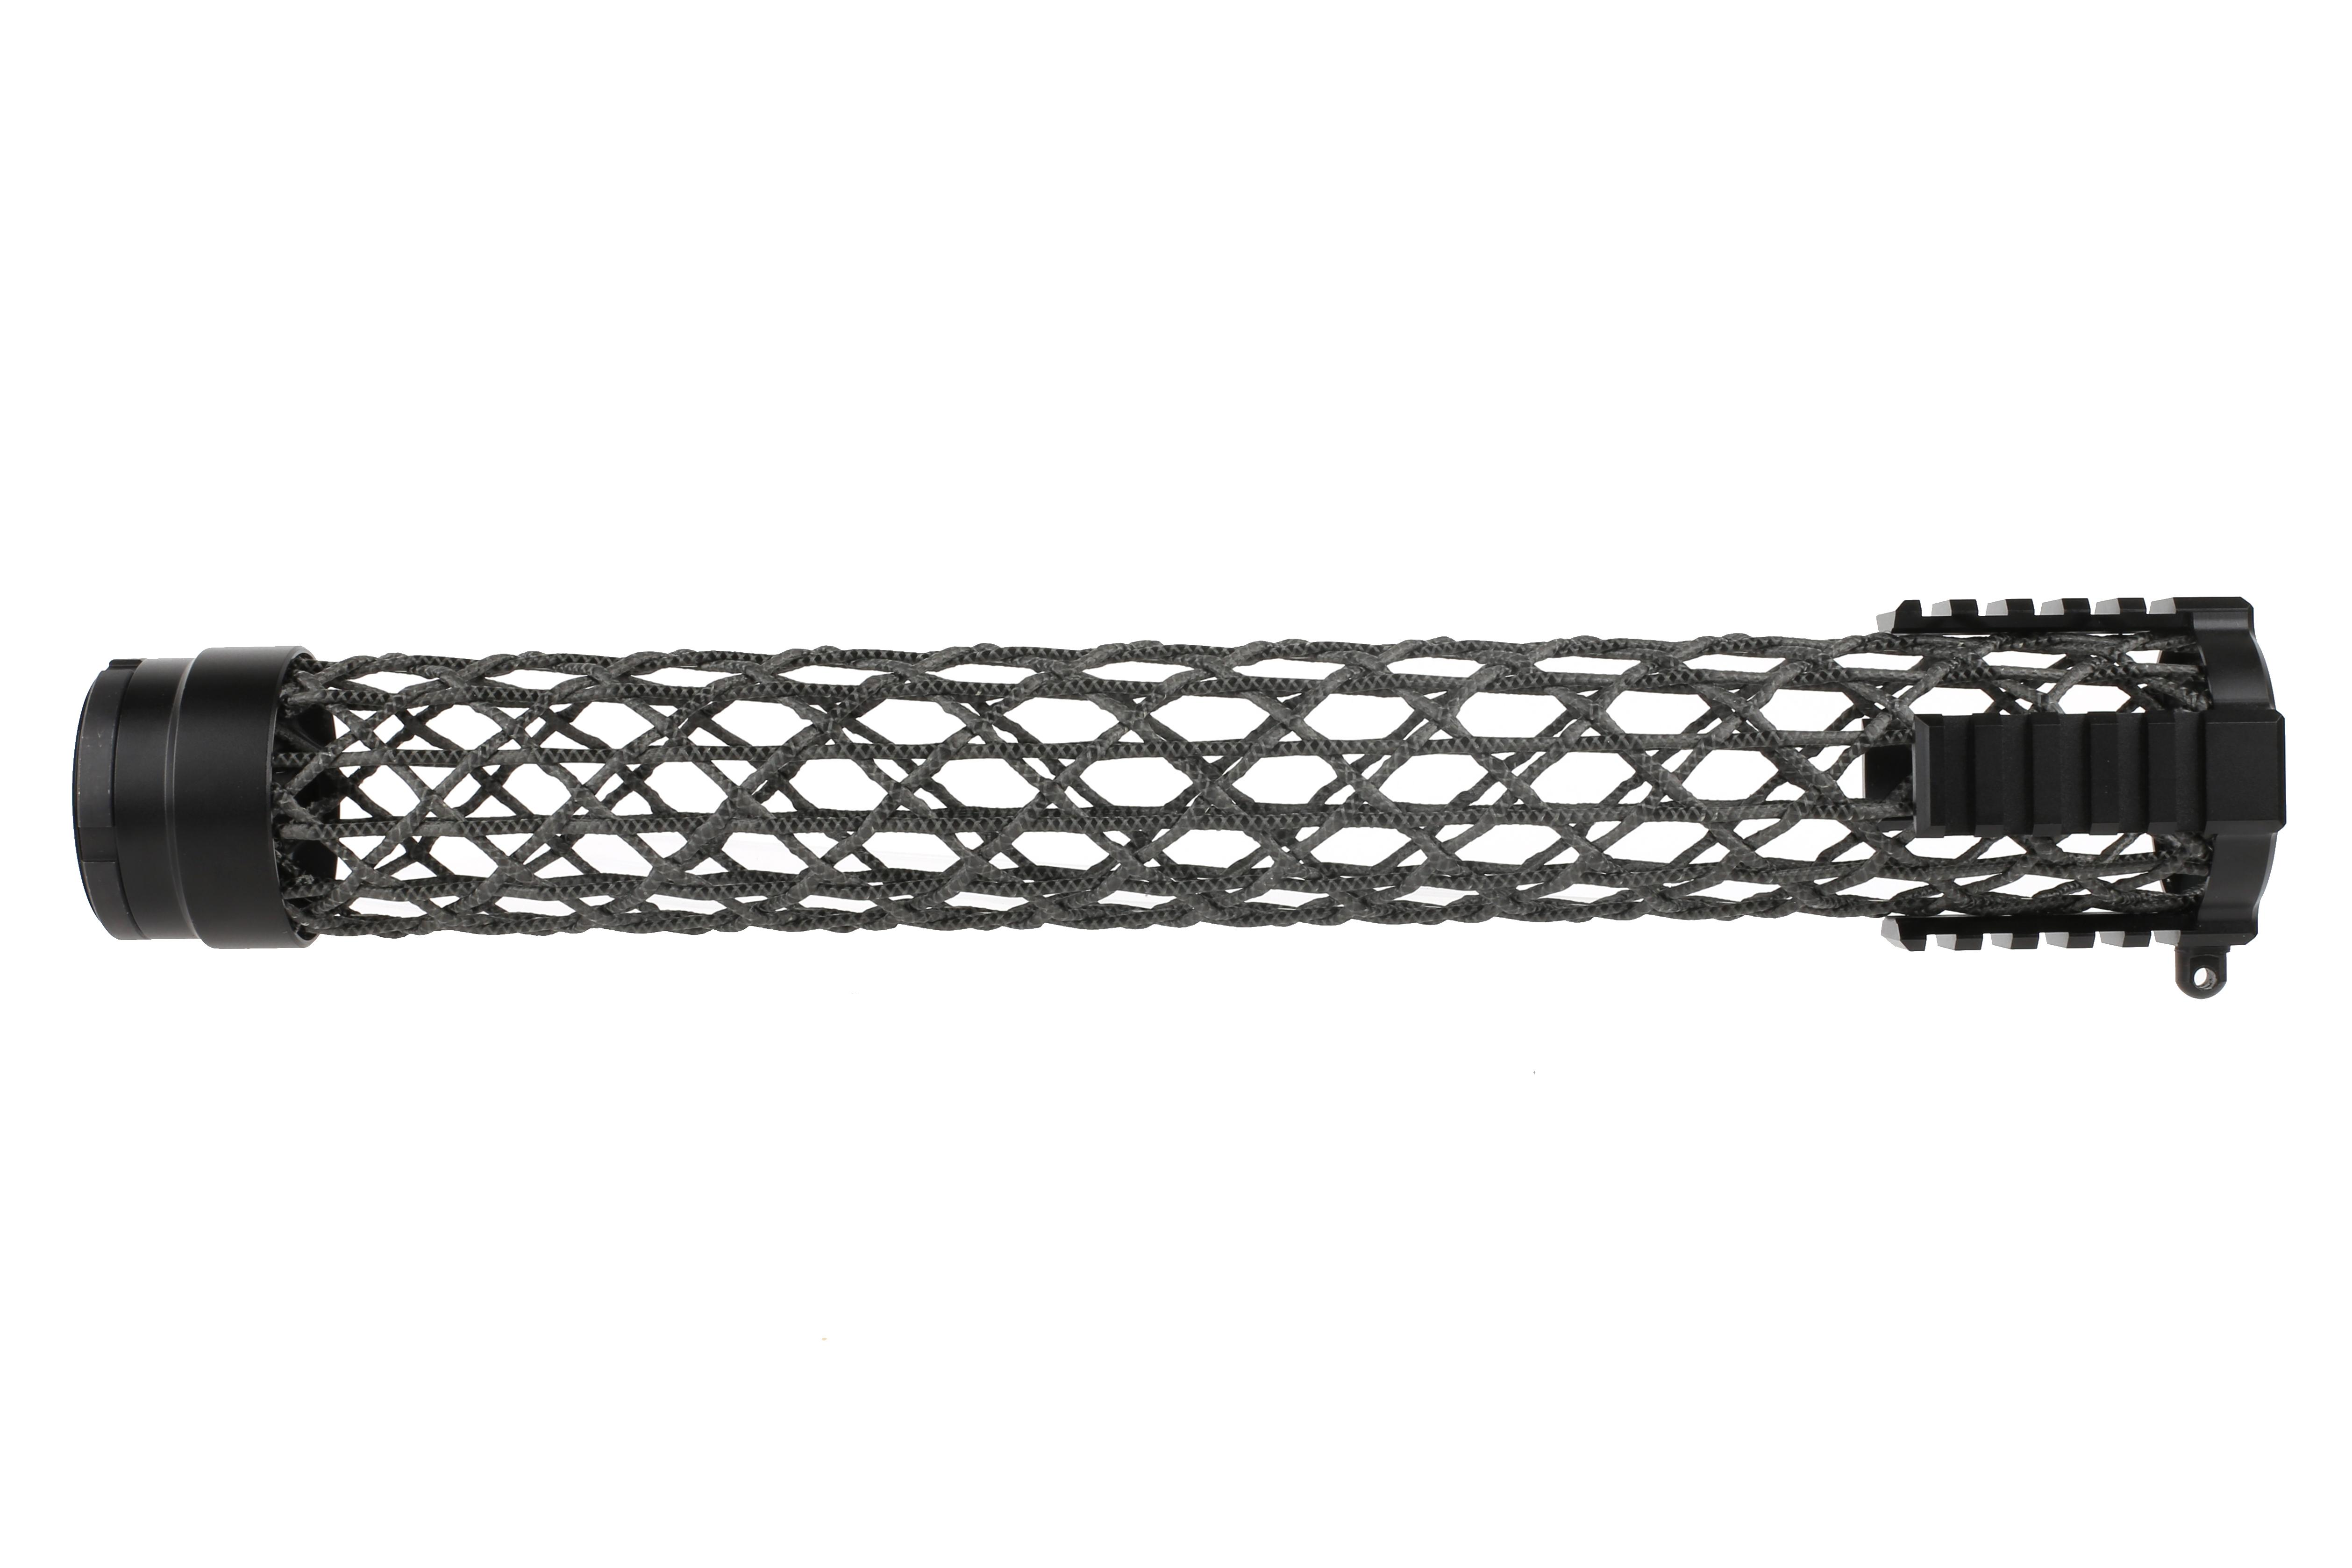 Brigand Arms - Atlas 15 Handguard - Black